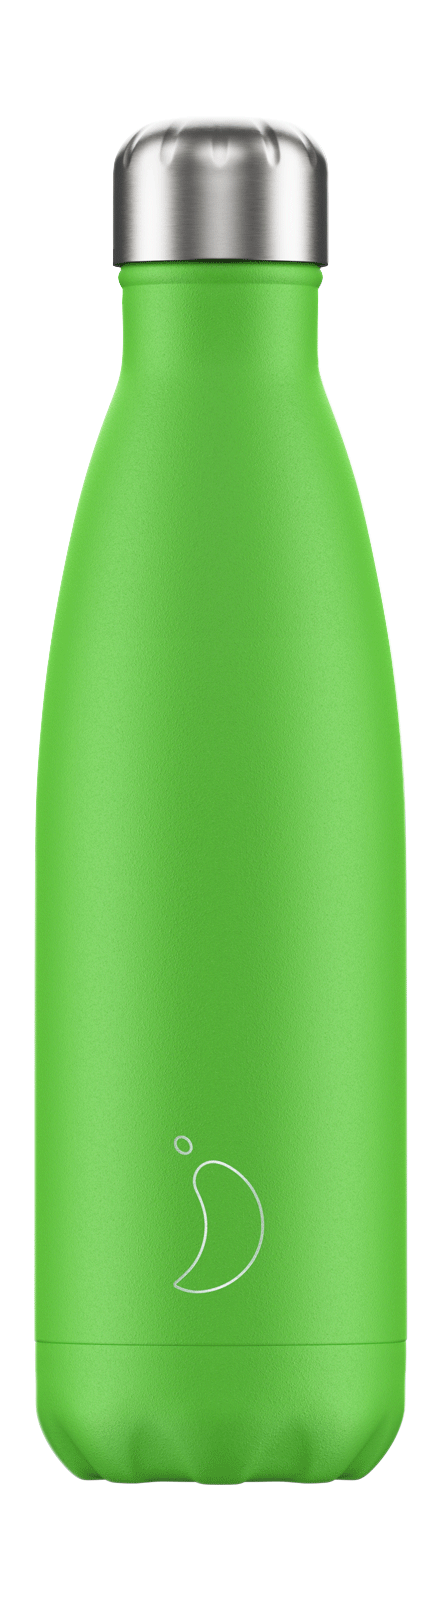 Chilly Double Wall Drinking Bottle 0.5L - Neon Green